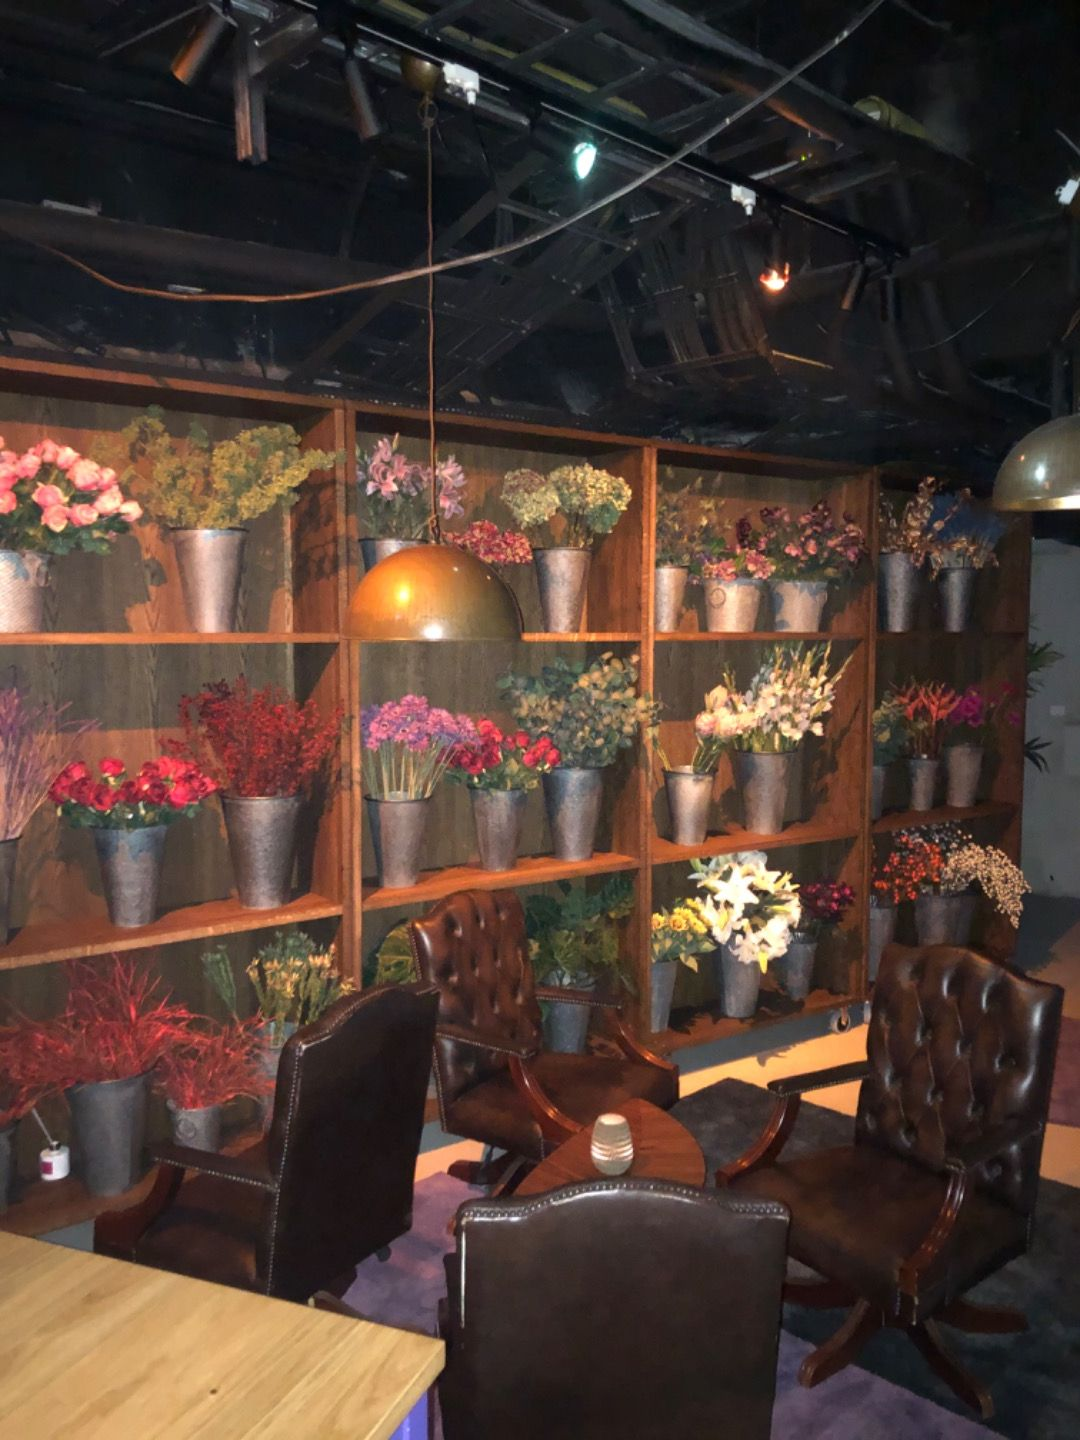 Photo from Lucy's Flower Shop by Elin E.